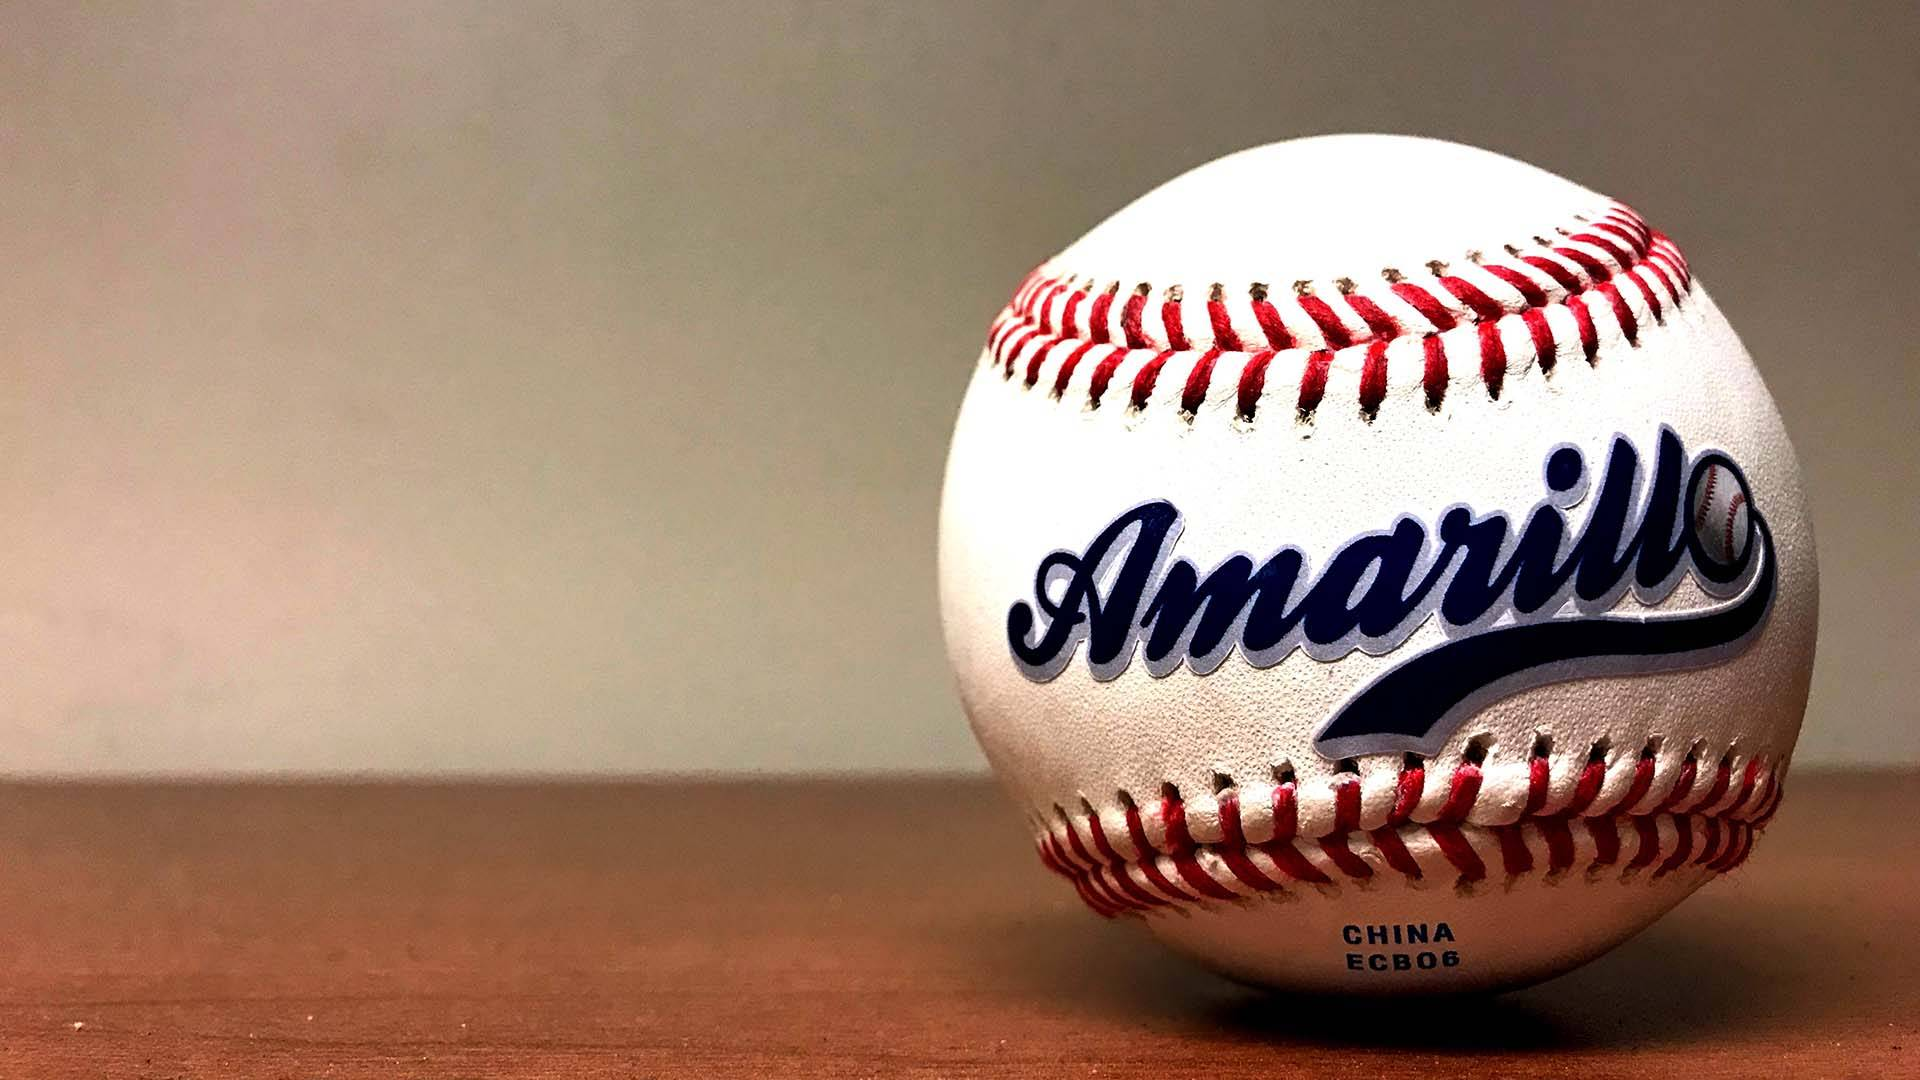 Amarillo baseball team finds its MLB partner